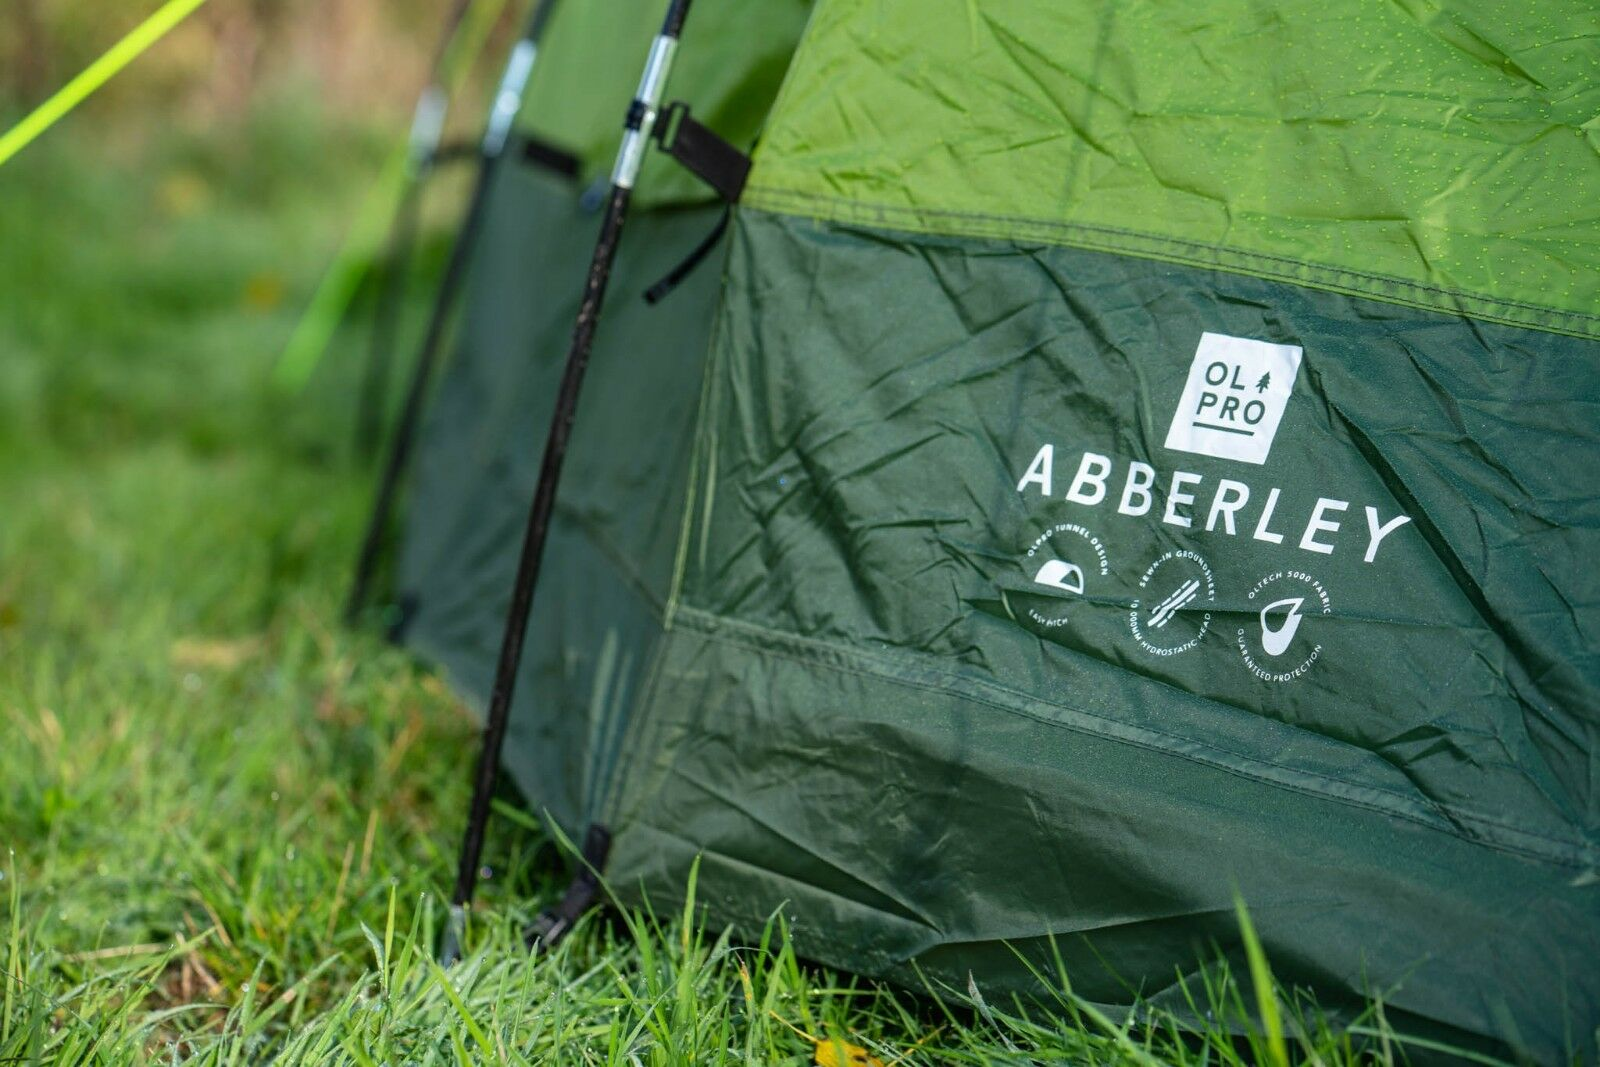 2 Berth Person Festival Tent Two Person Berth Weekend Camping Tent - OLPRO Abberley (Grün) b0c380